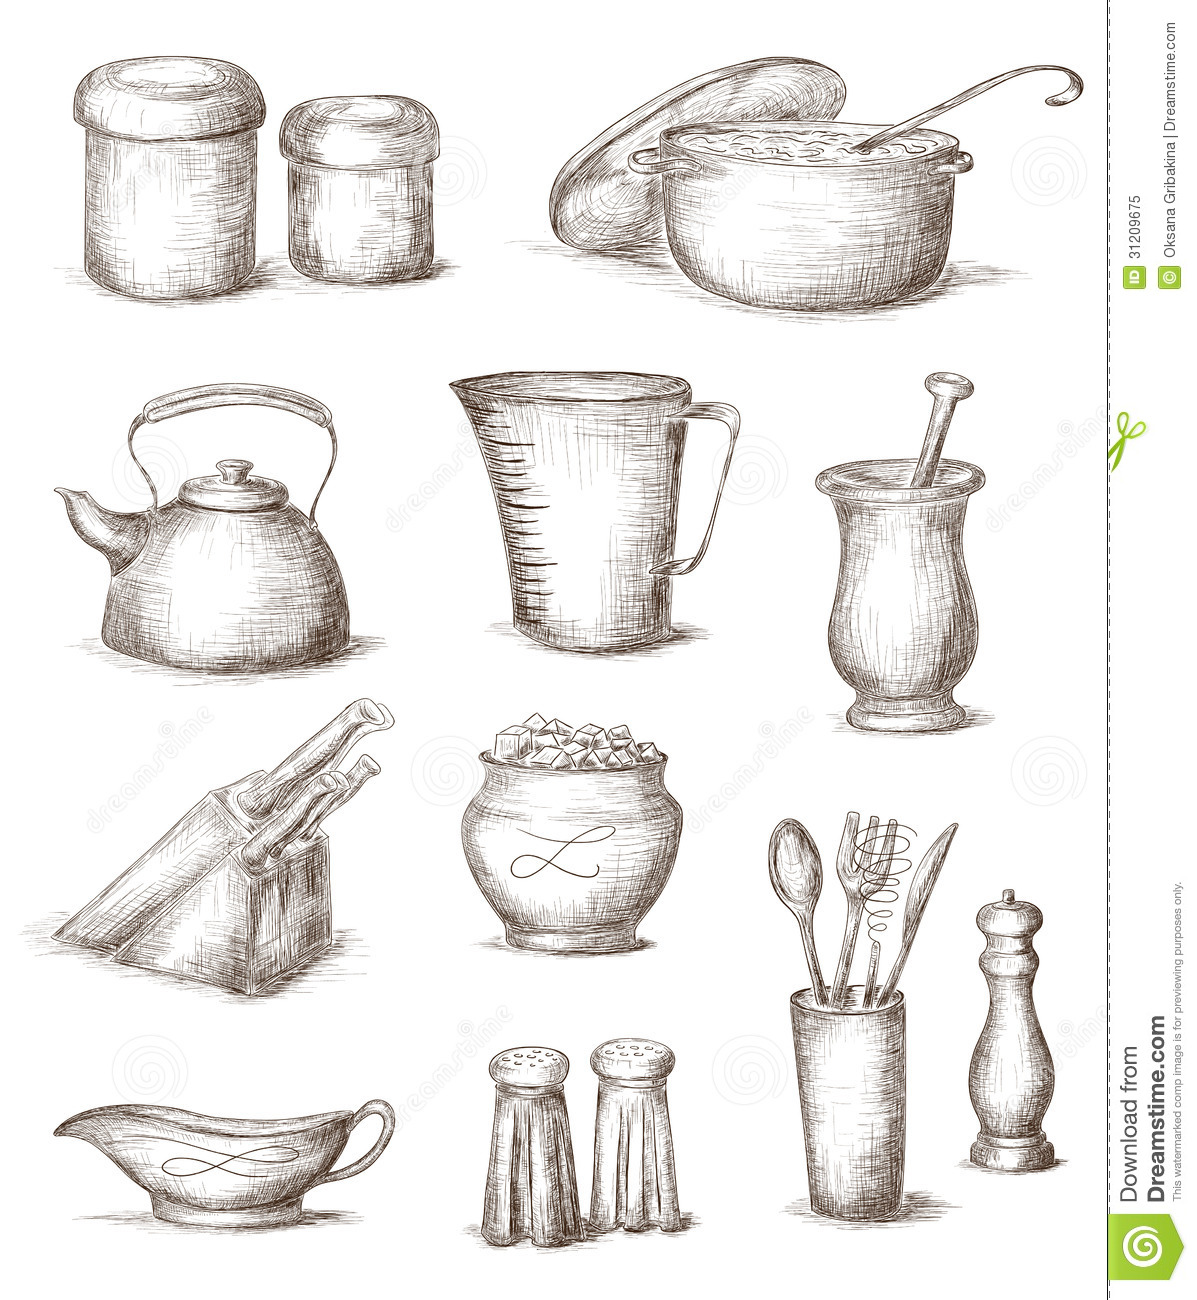 Kitchen Tools Drawings kitchen utensils drawings ~ crowdbuild for .